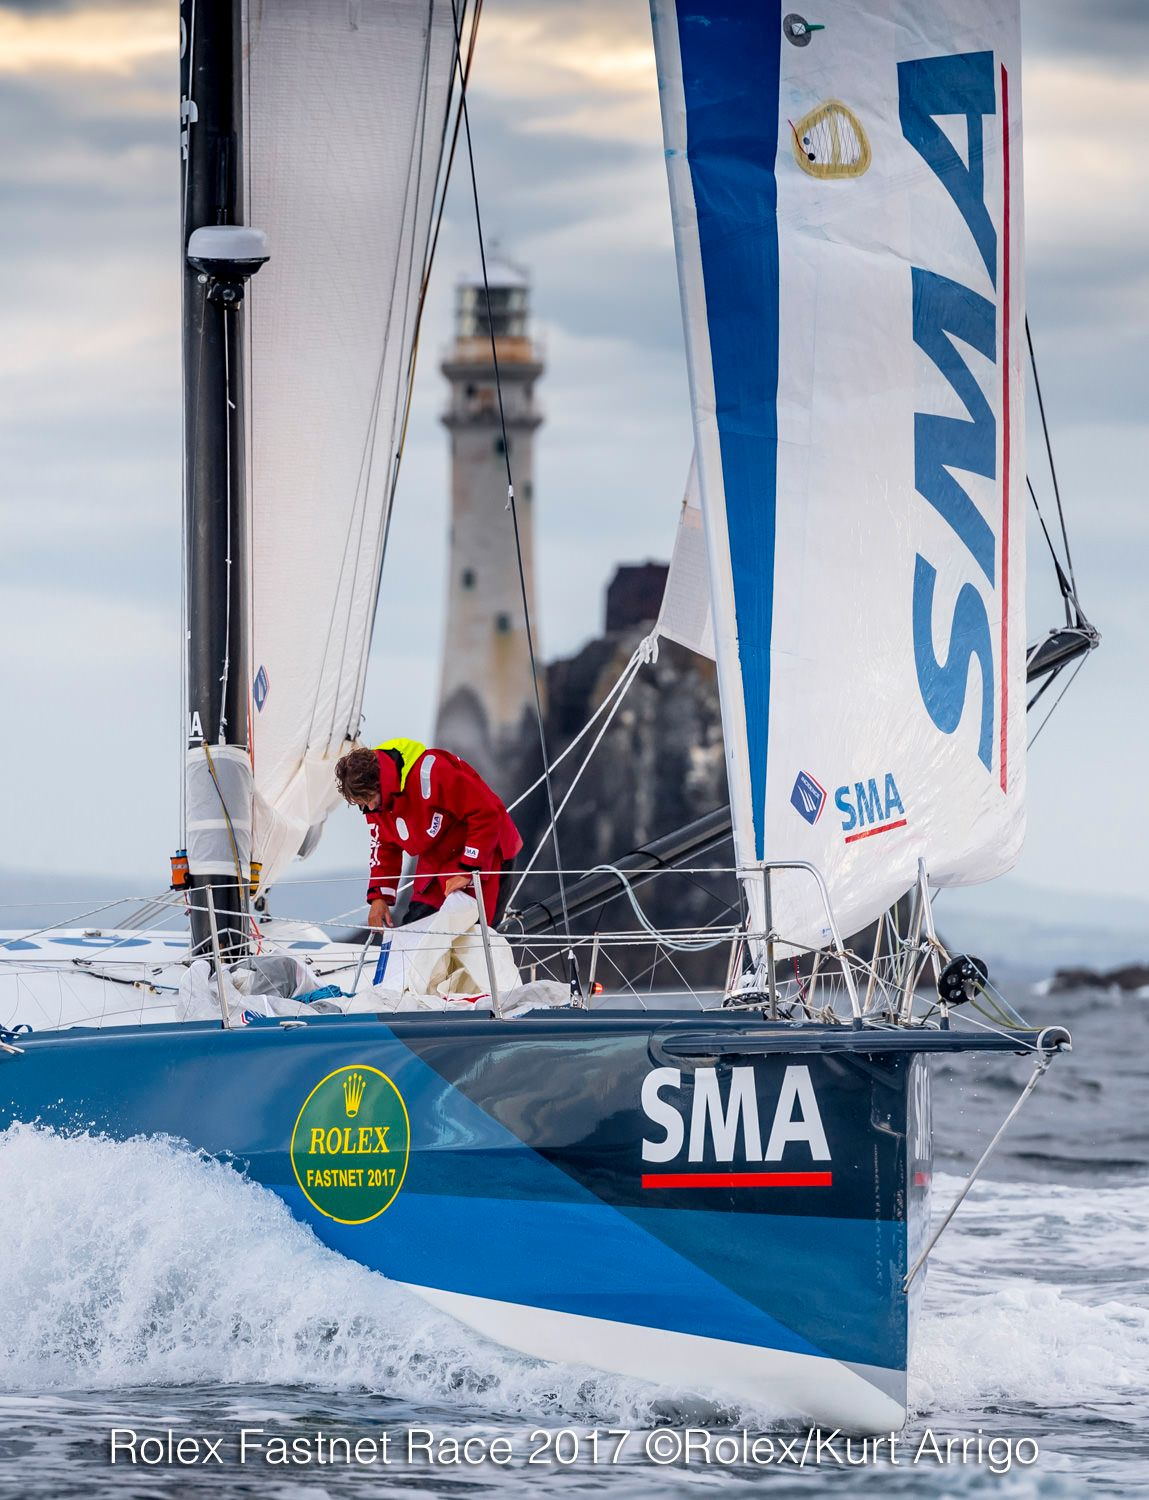 IMOCA 60, SMA, skippered by Paul Meilhat and Gwénolé Gahinet, rounding the Fastnet Rock. Credit: SMA